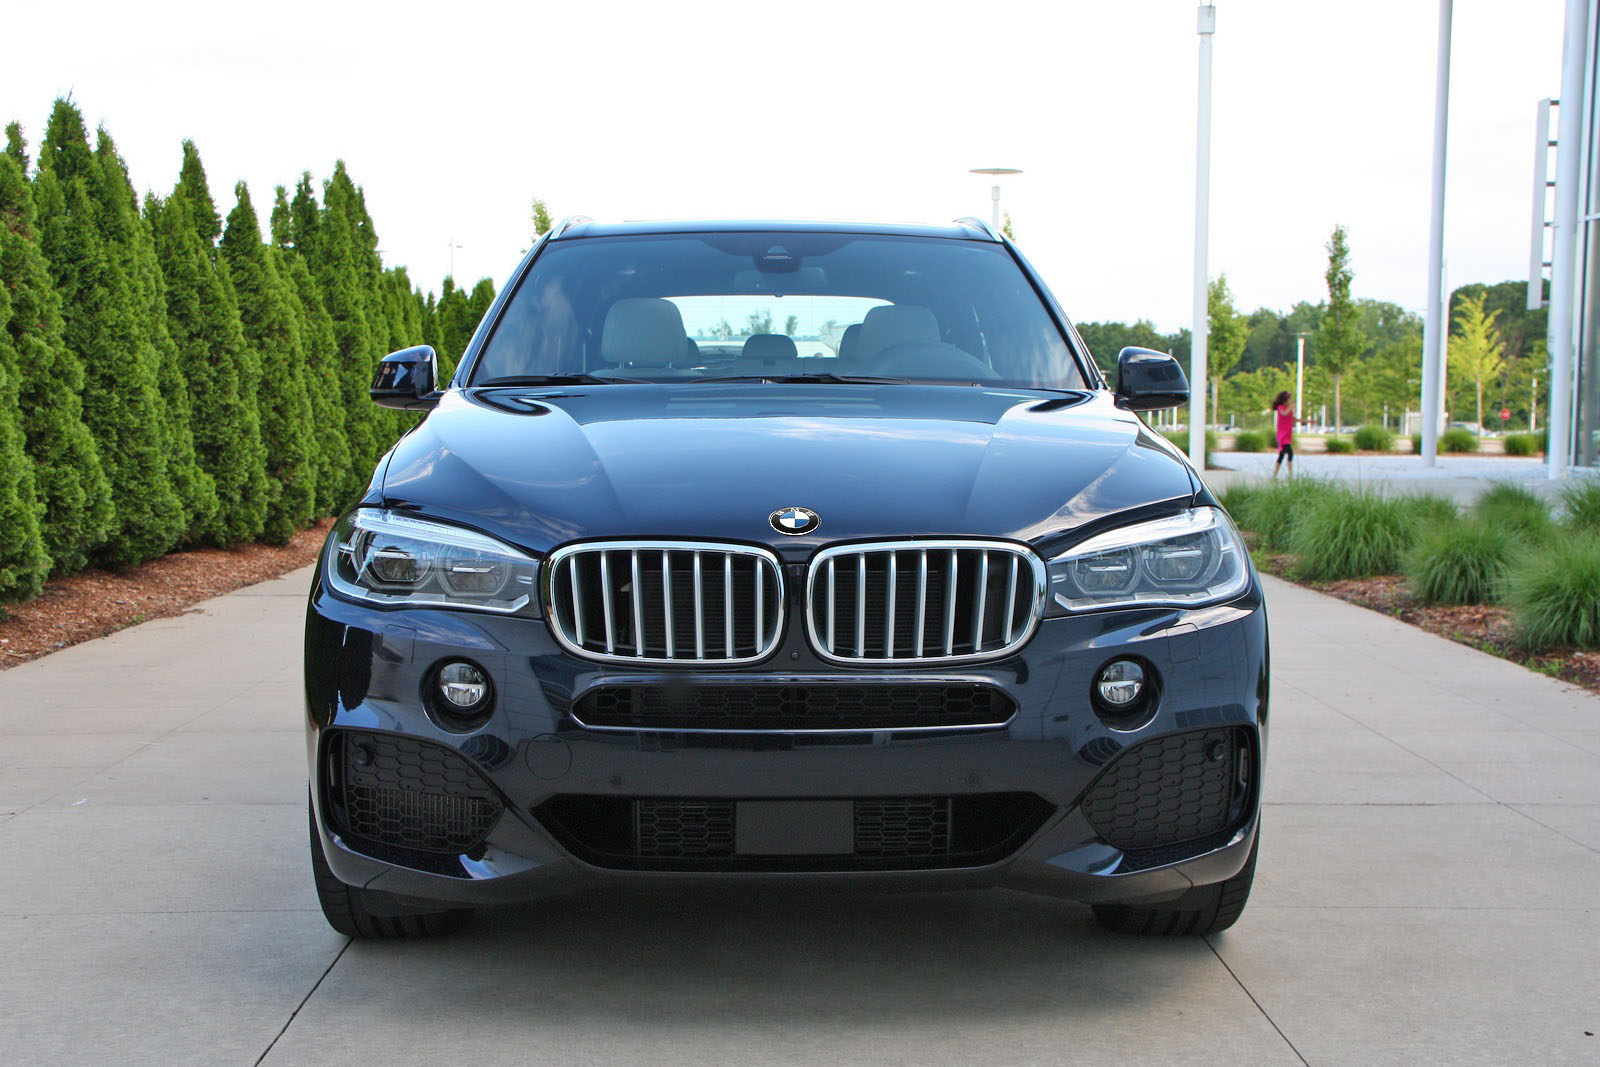 Car News And Rumors F15 2014 Bmw X5 50i M Sport Uncovered